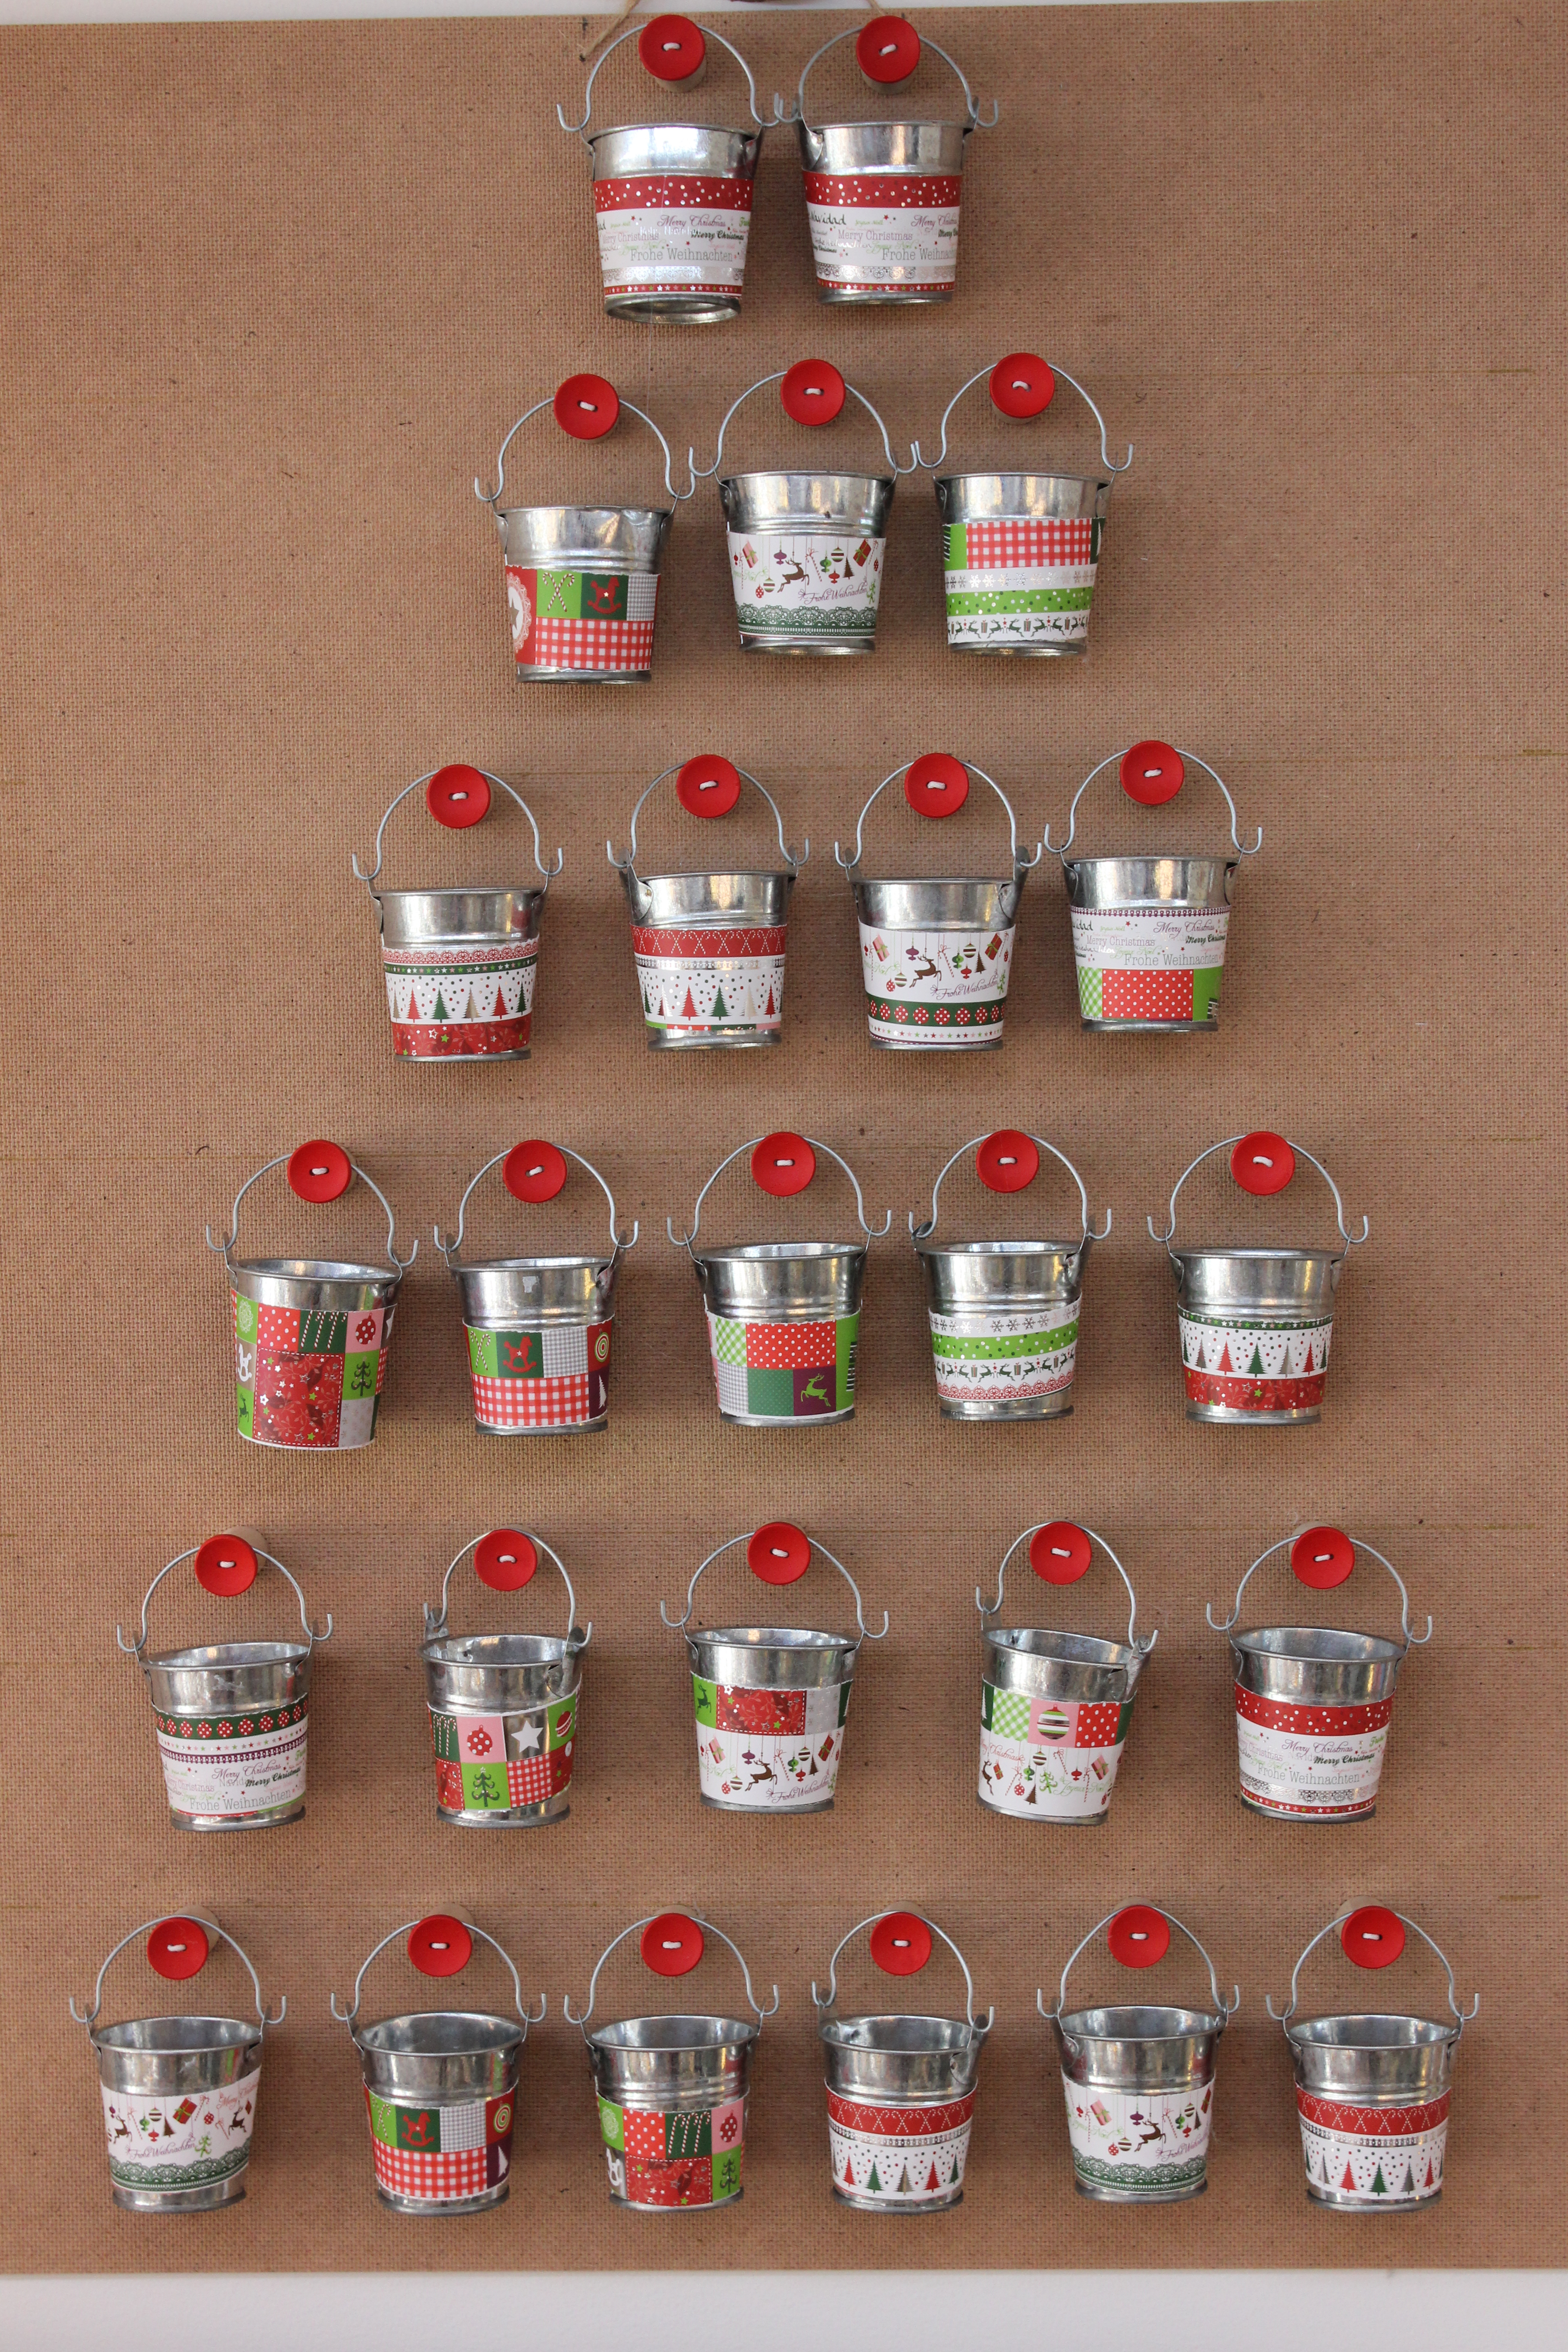 Superior Christmas Arts And Crafts Ideas For Adults Part - 12: Advent Calendar Christmas Slanchogled Arts And Crafts Camden Shop